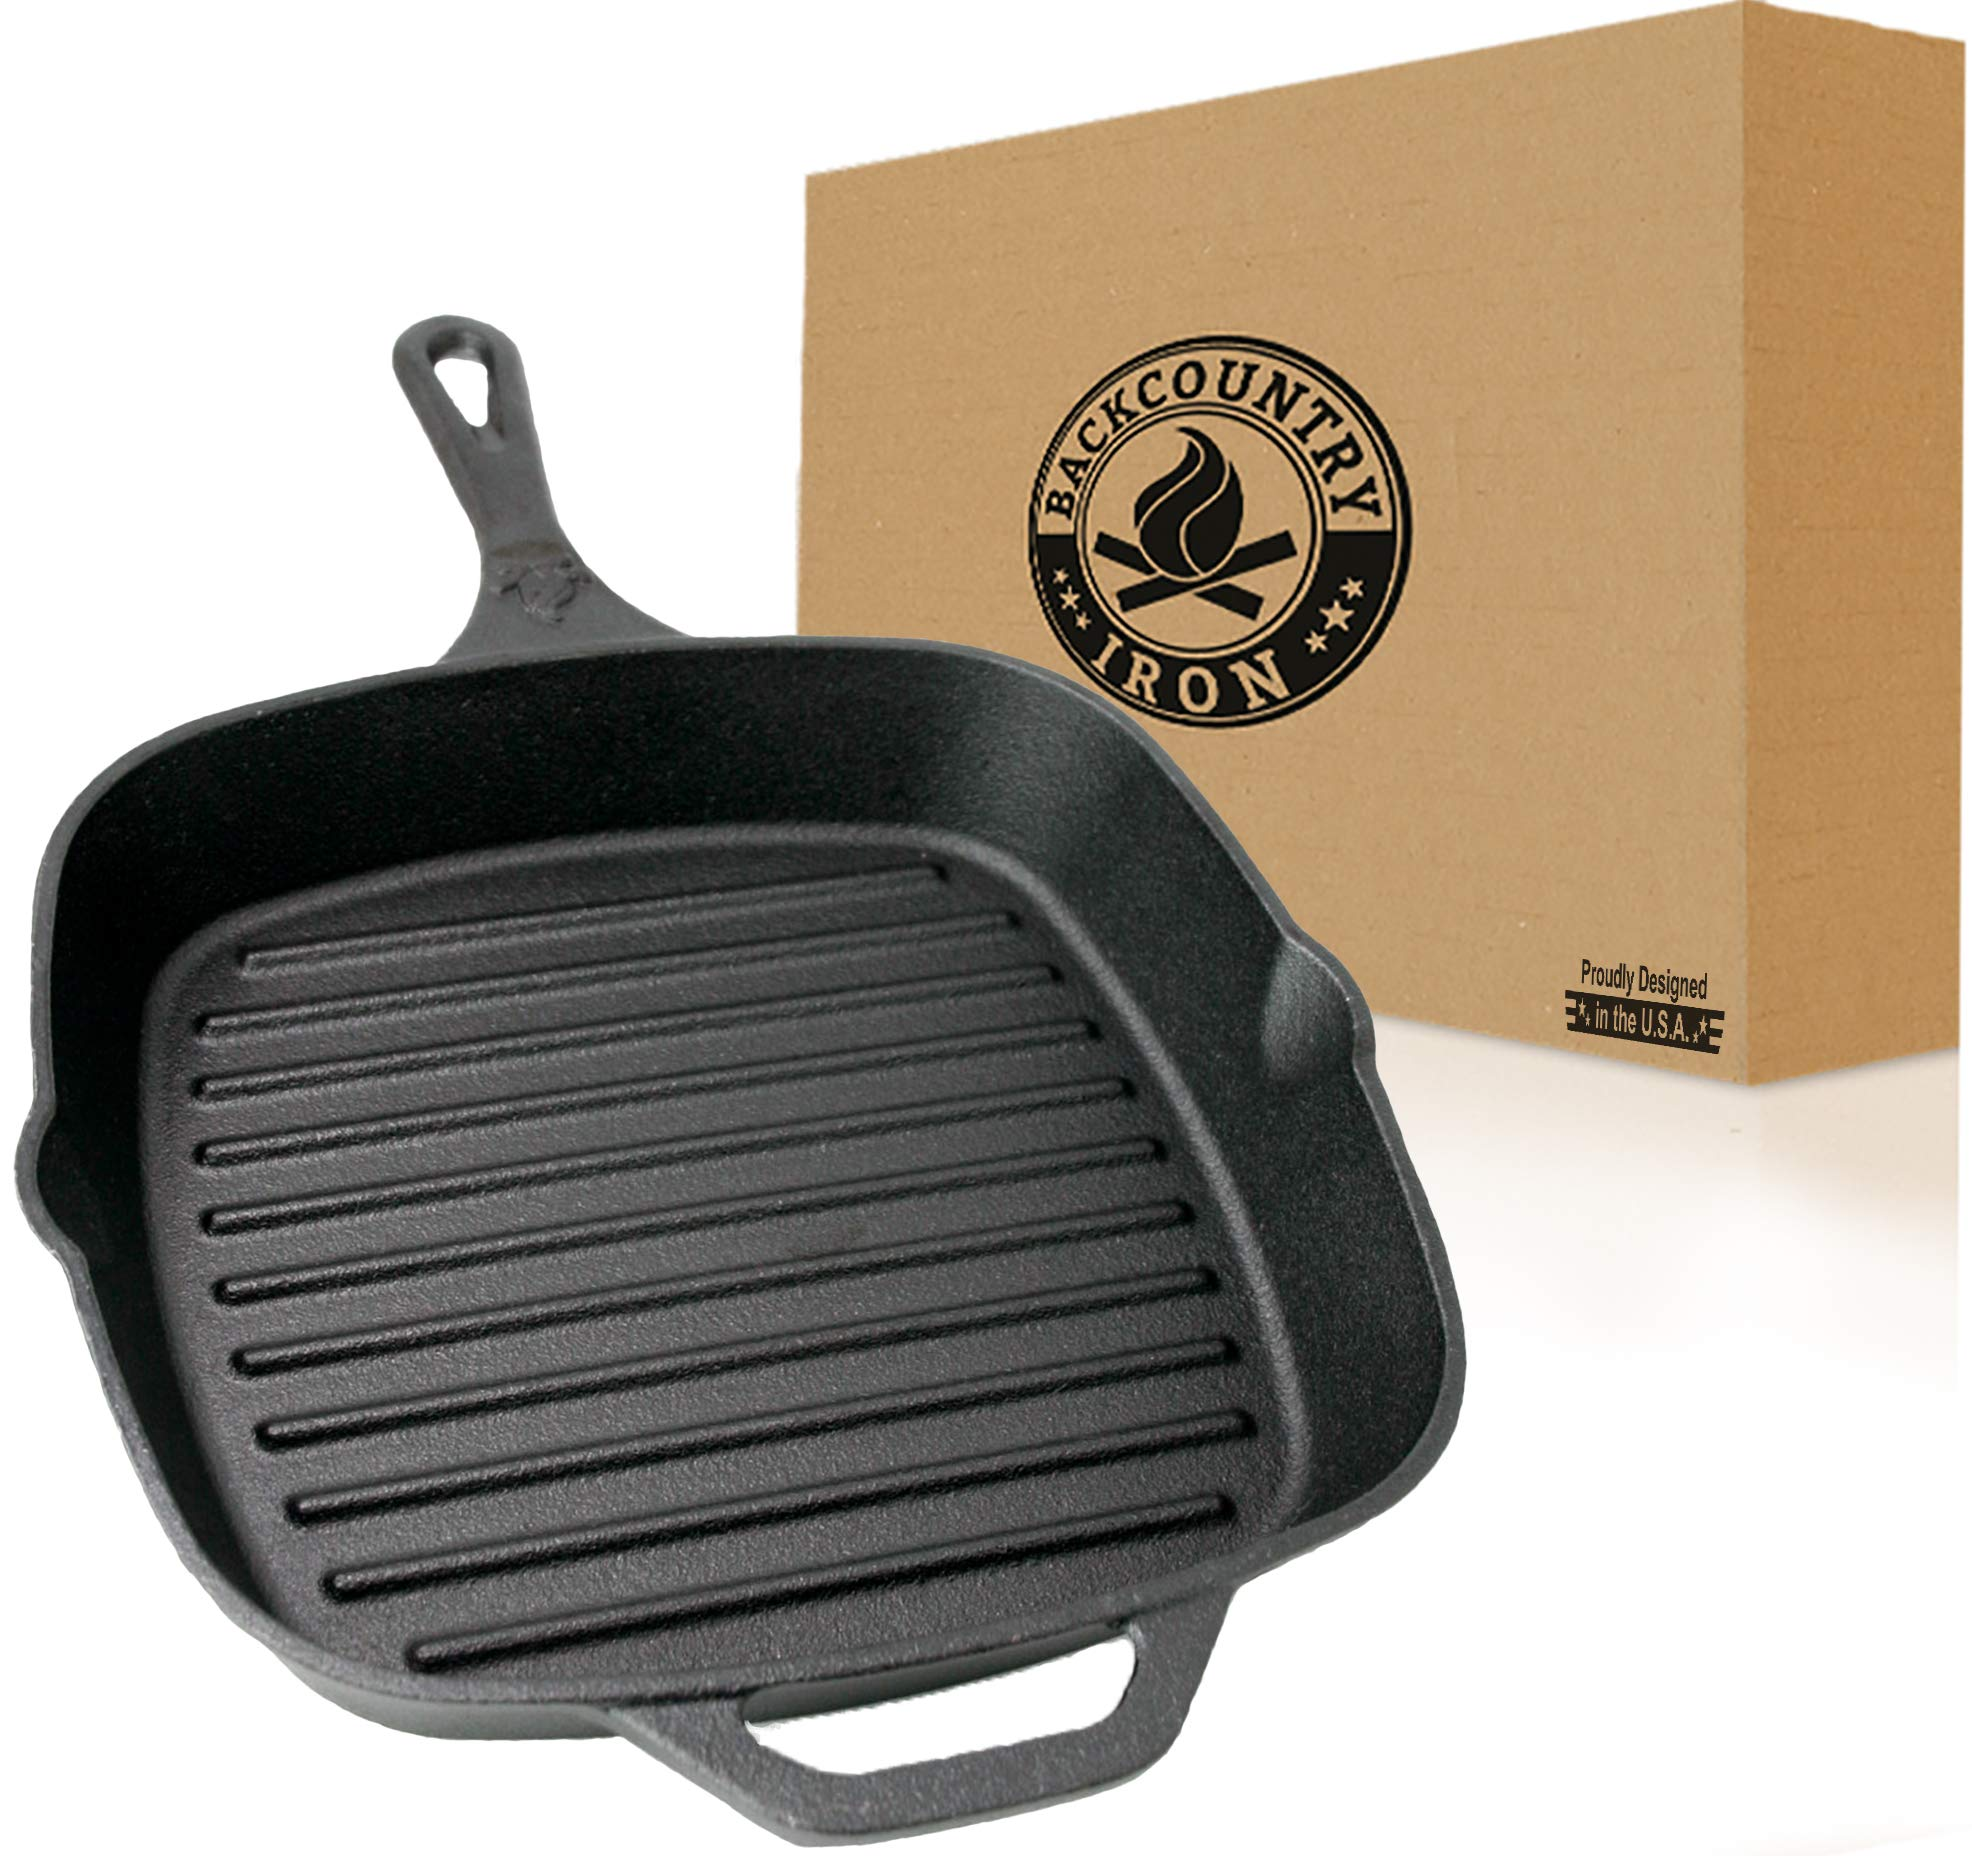 Backcountry Cast Iron 12'' Large Square Grill Pan (Pre-Seasoned for Non-Stick Like Surface, Cookware Range/Oven/Broiler/Grill Safe, Kitchen Skillet Restaurant Chef Quality)